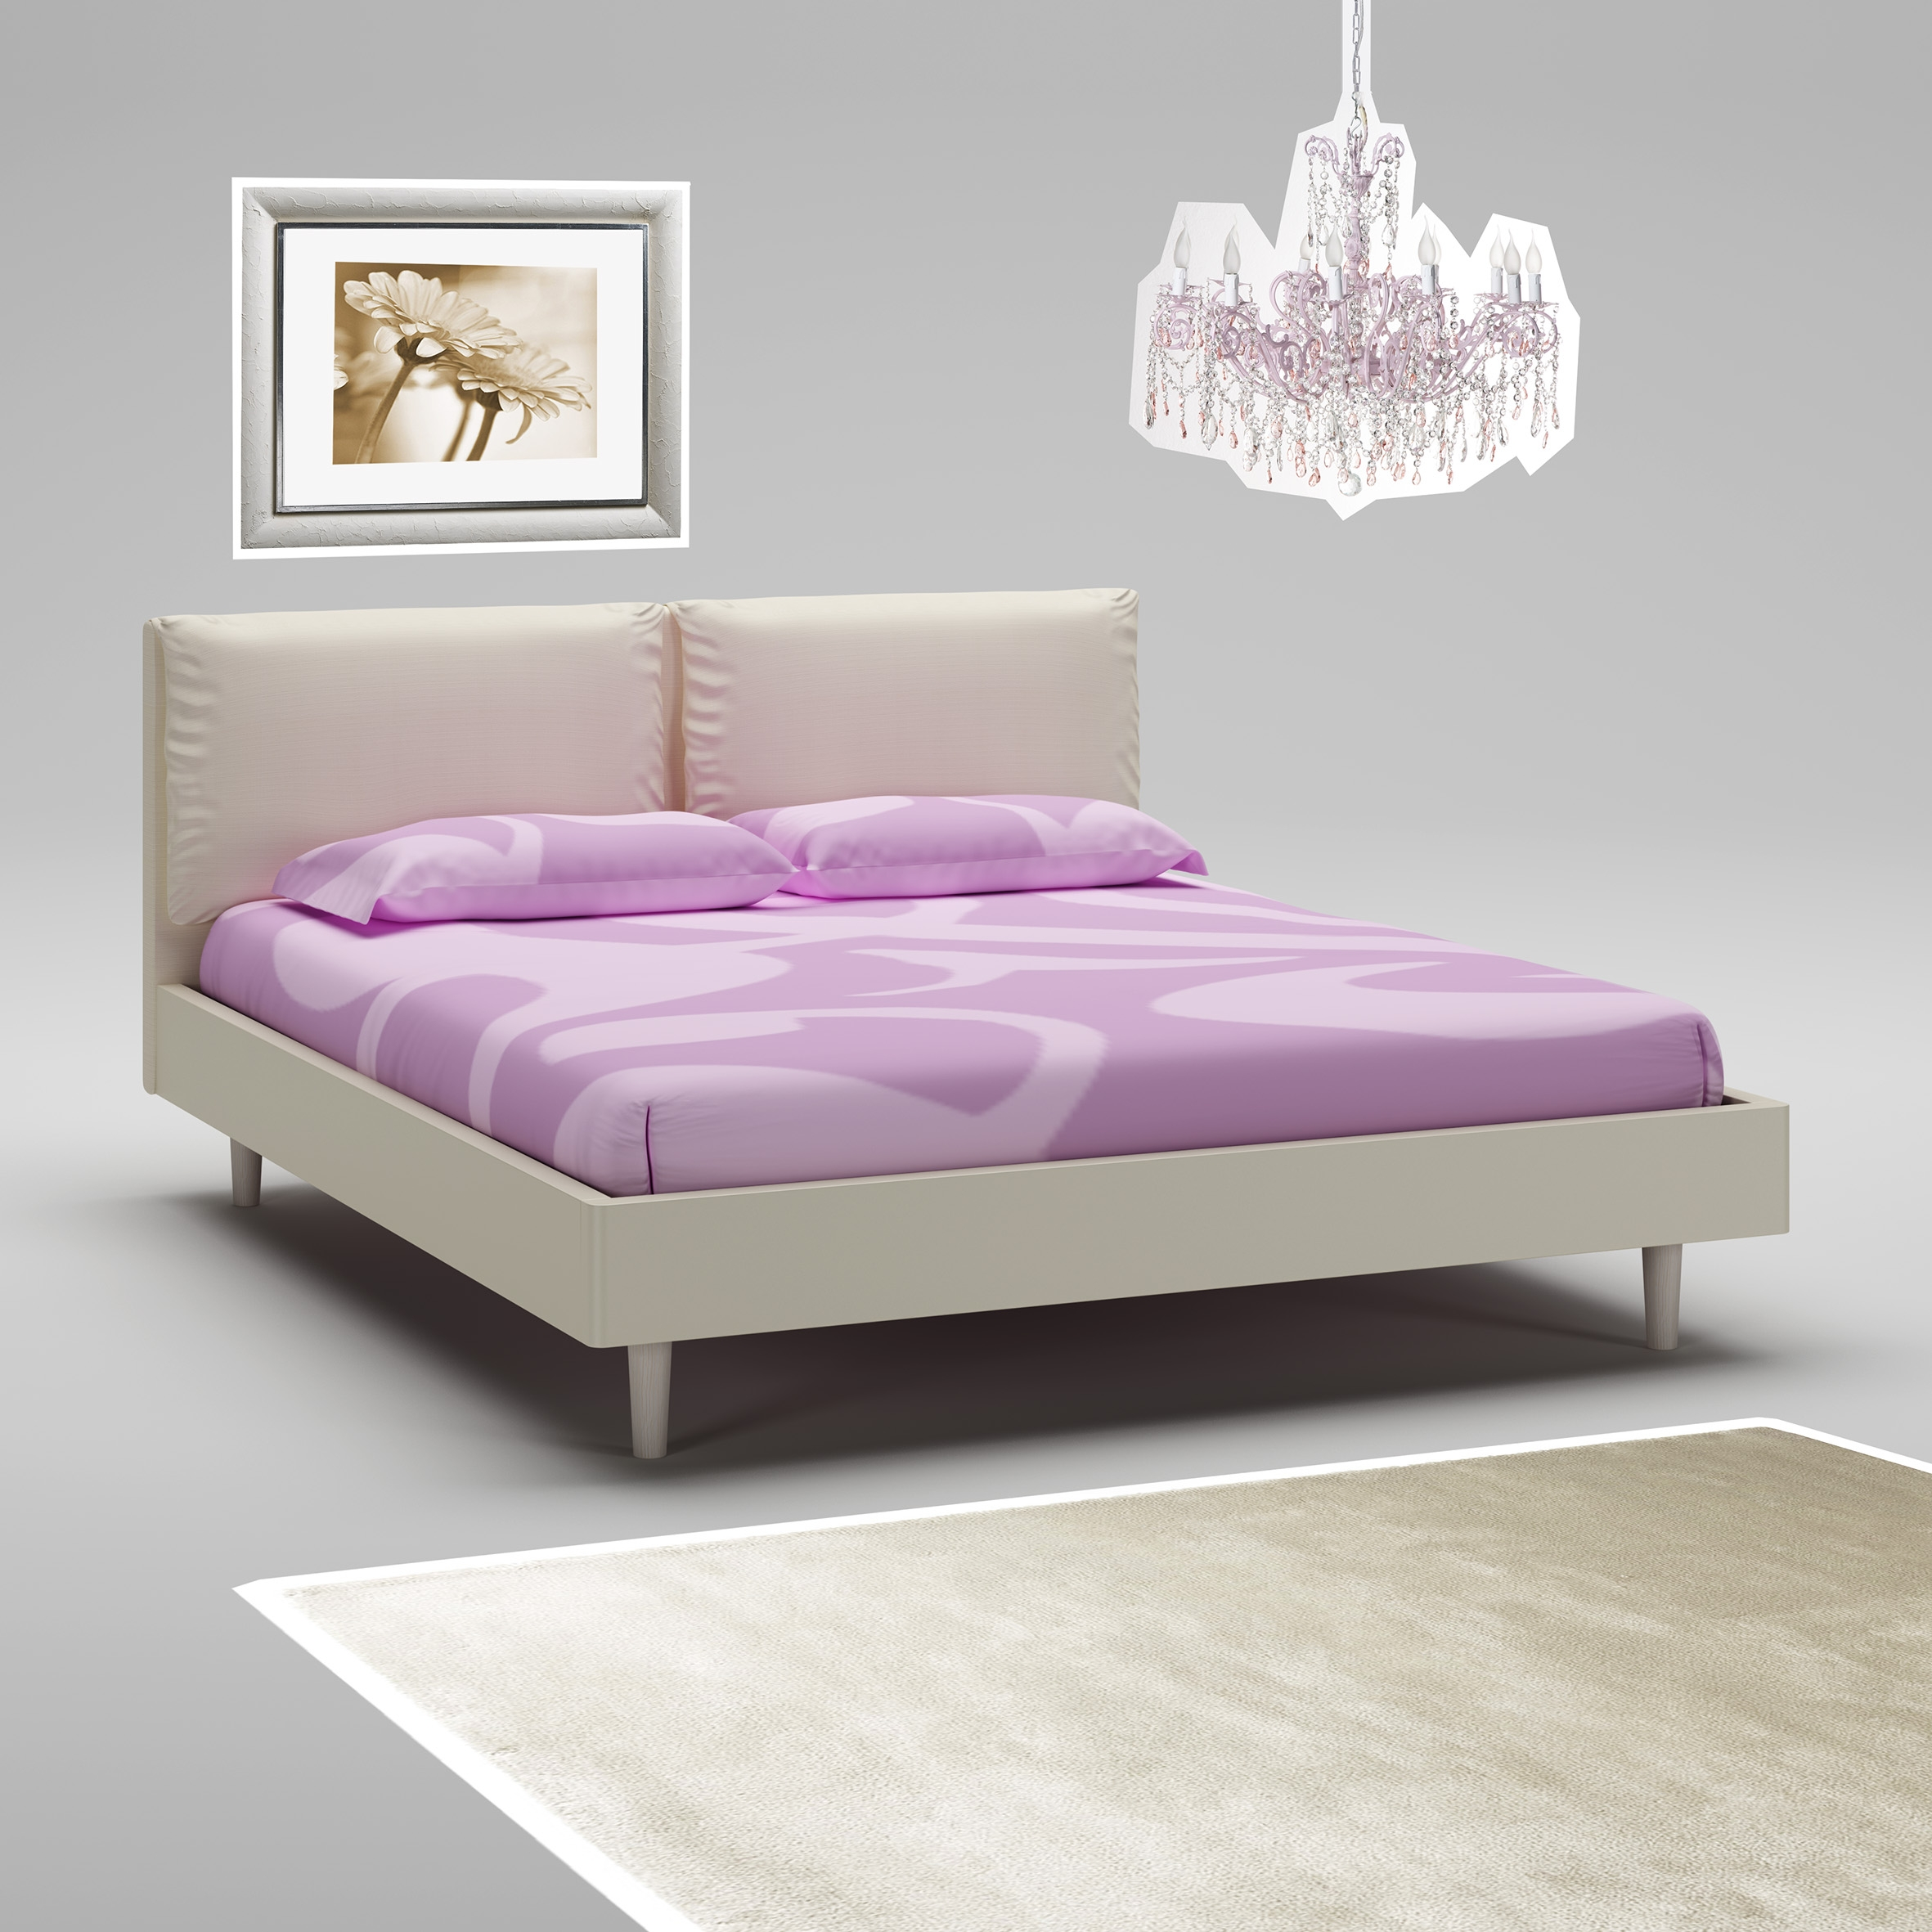 lit adulte cadre t te de lit ivoire moretti compact so nuit. Black Bedroom Furniture Sets. Home Design Ideas